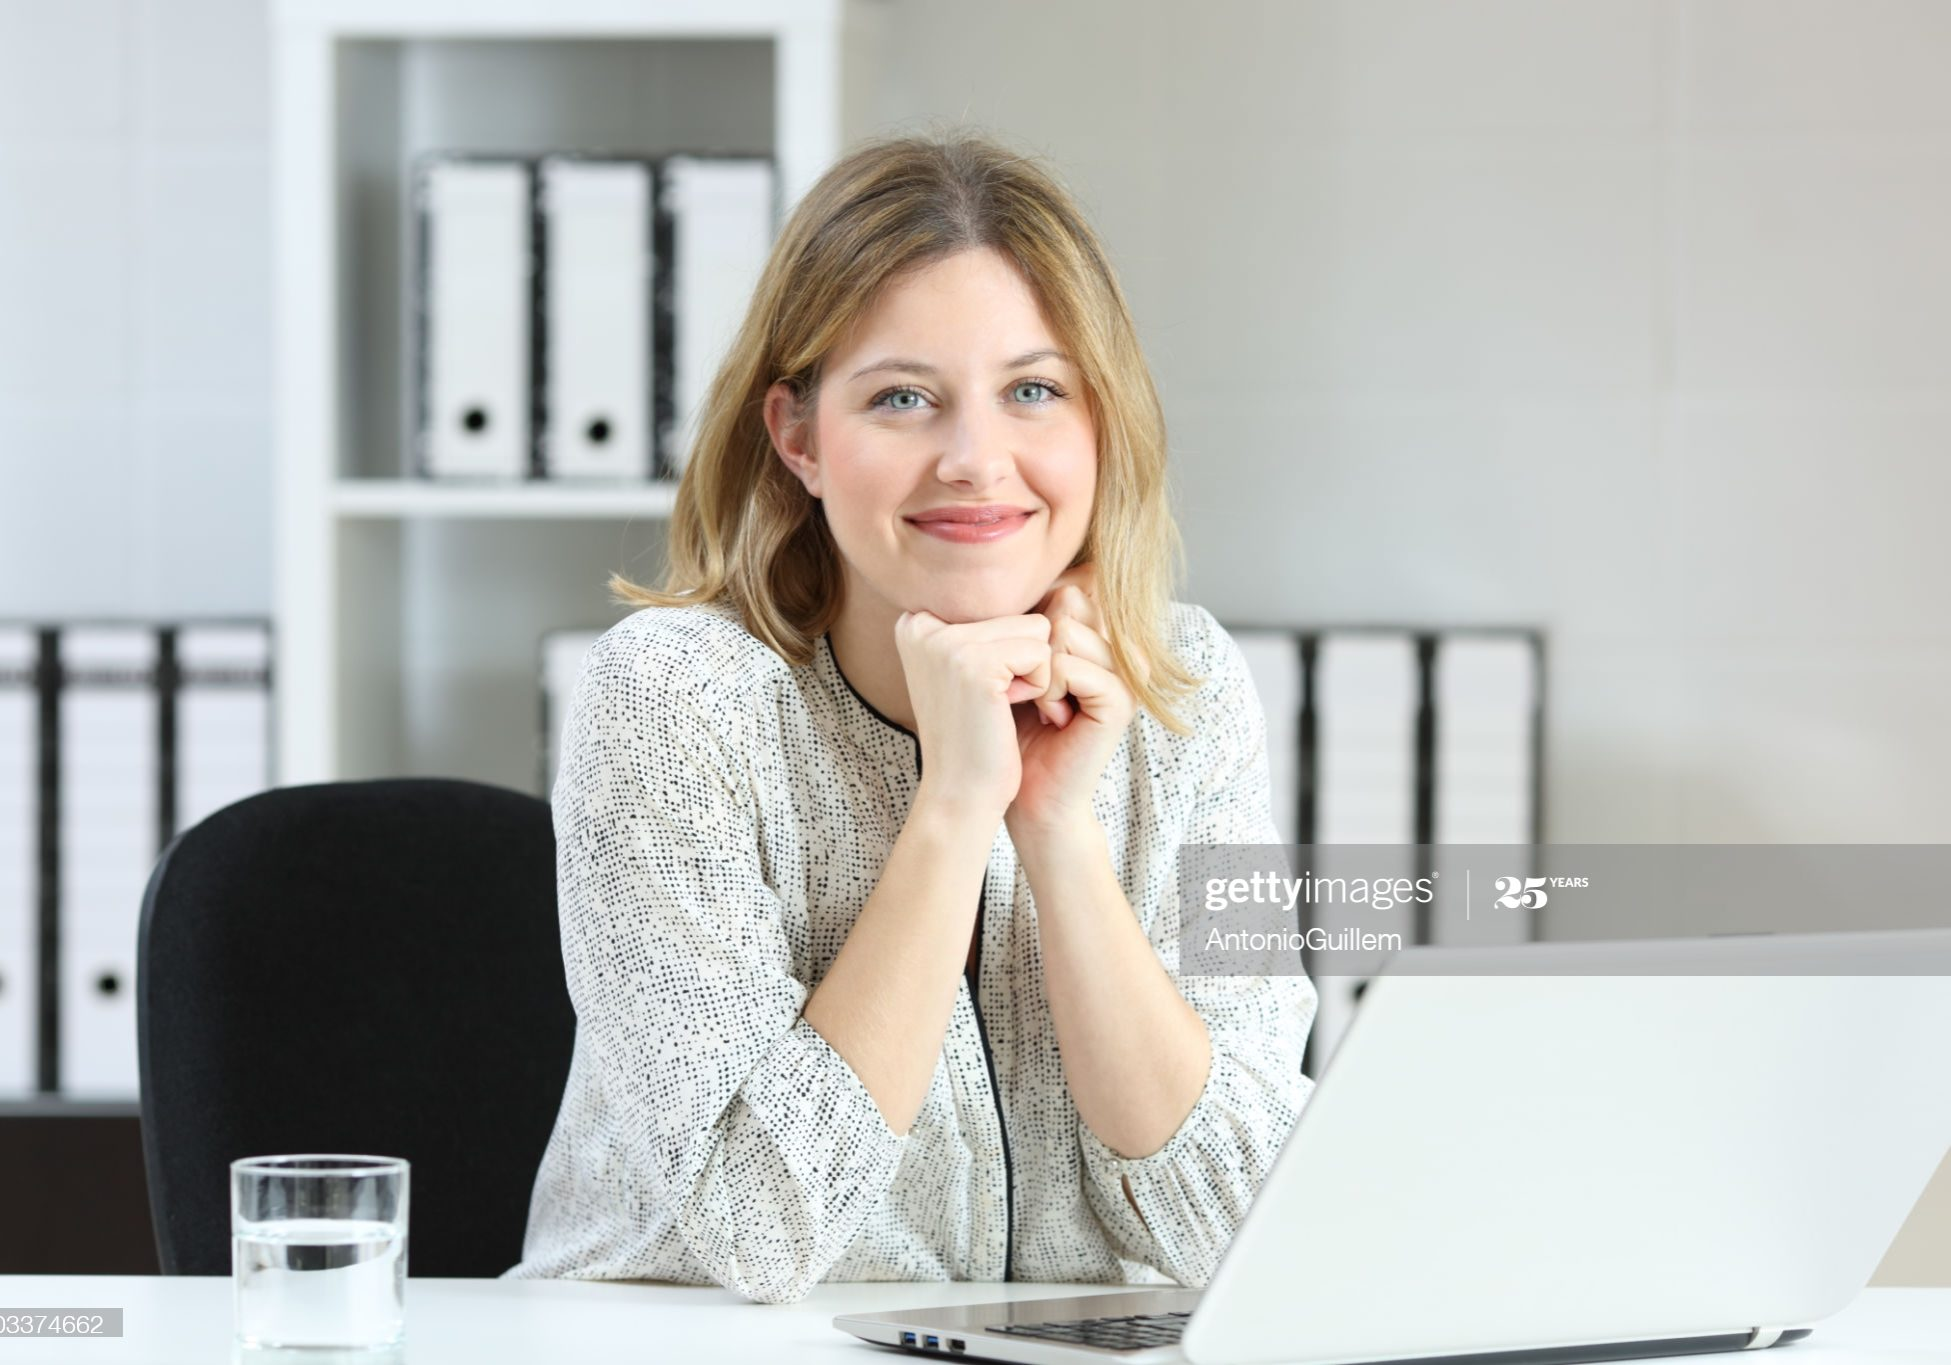 Front view portrait of a businesswoman posing looking at you on a desk at office